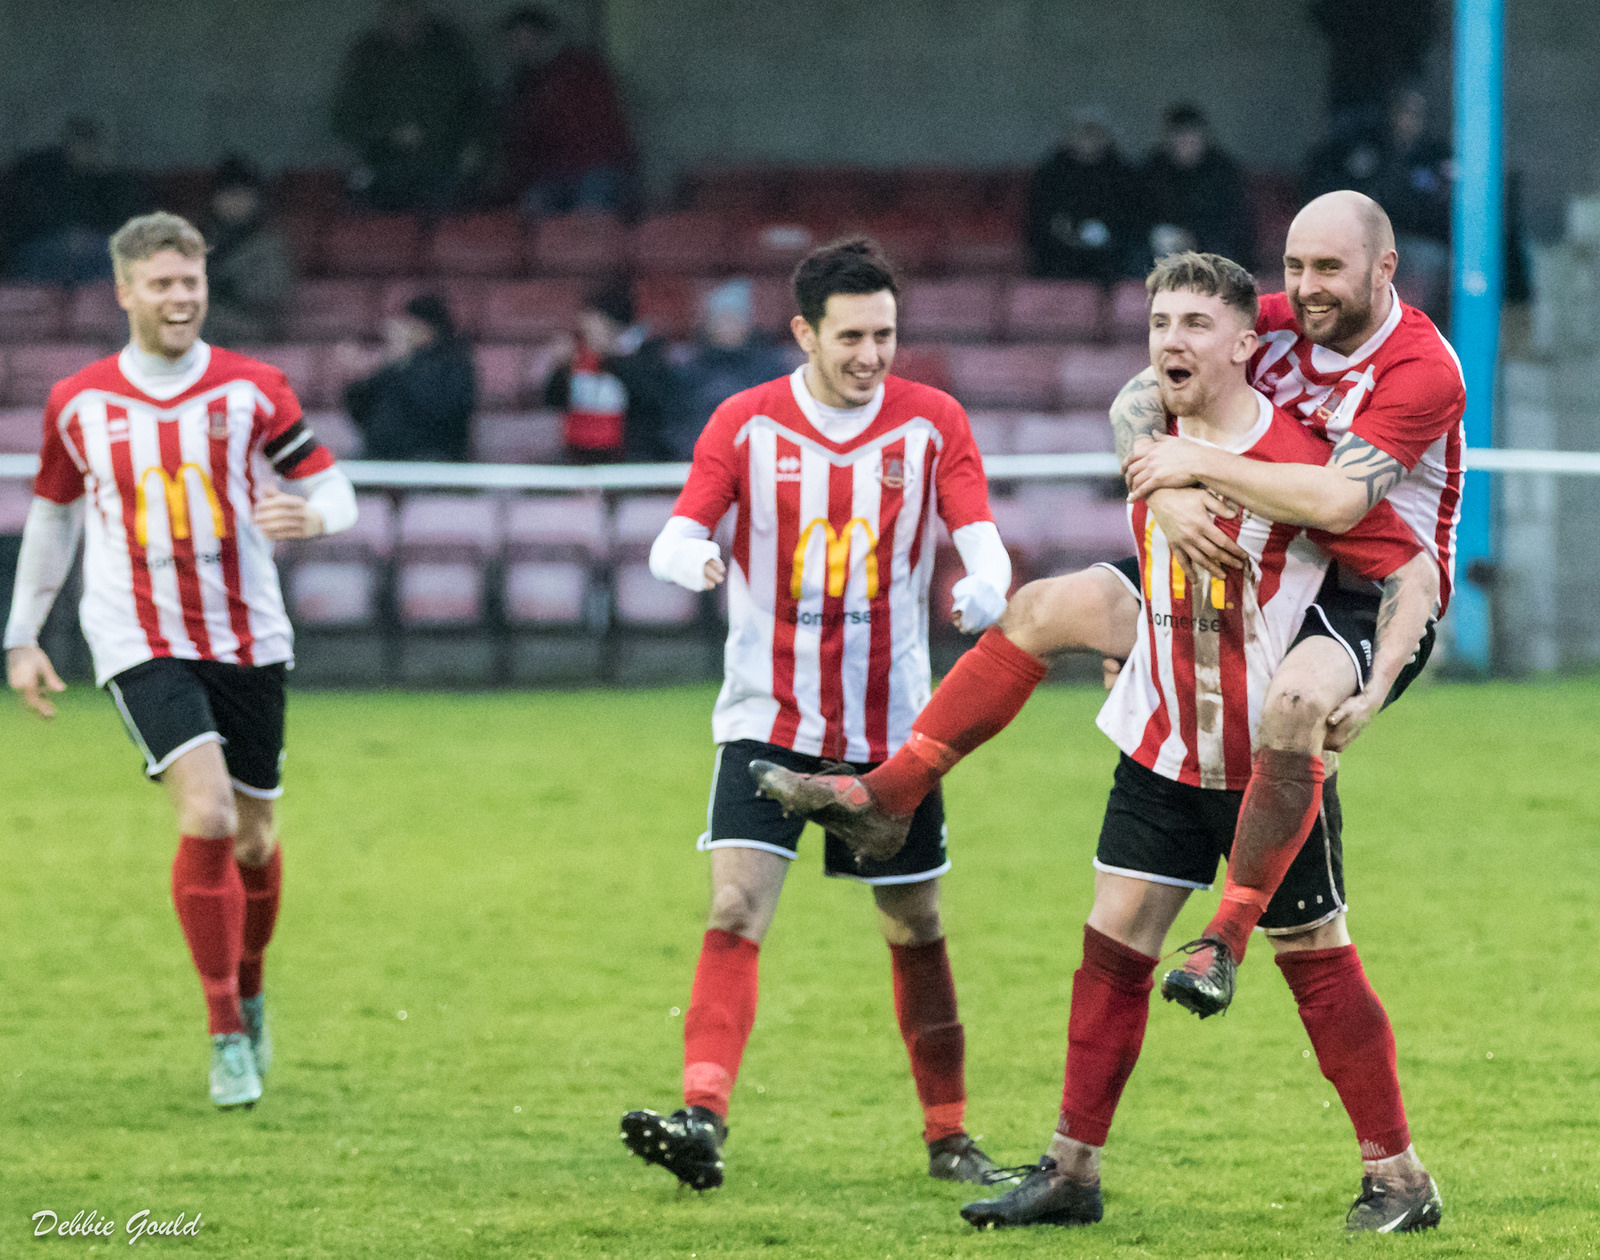 RAMPANT: Bridgwater Town thumped Wells City 5-0 at Fairfax Park.